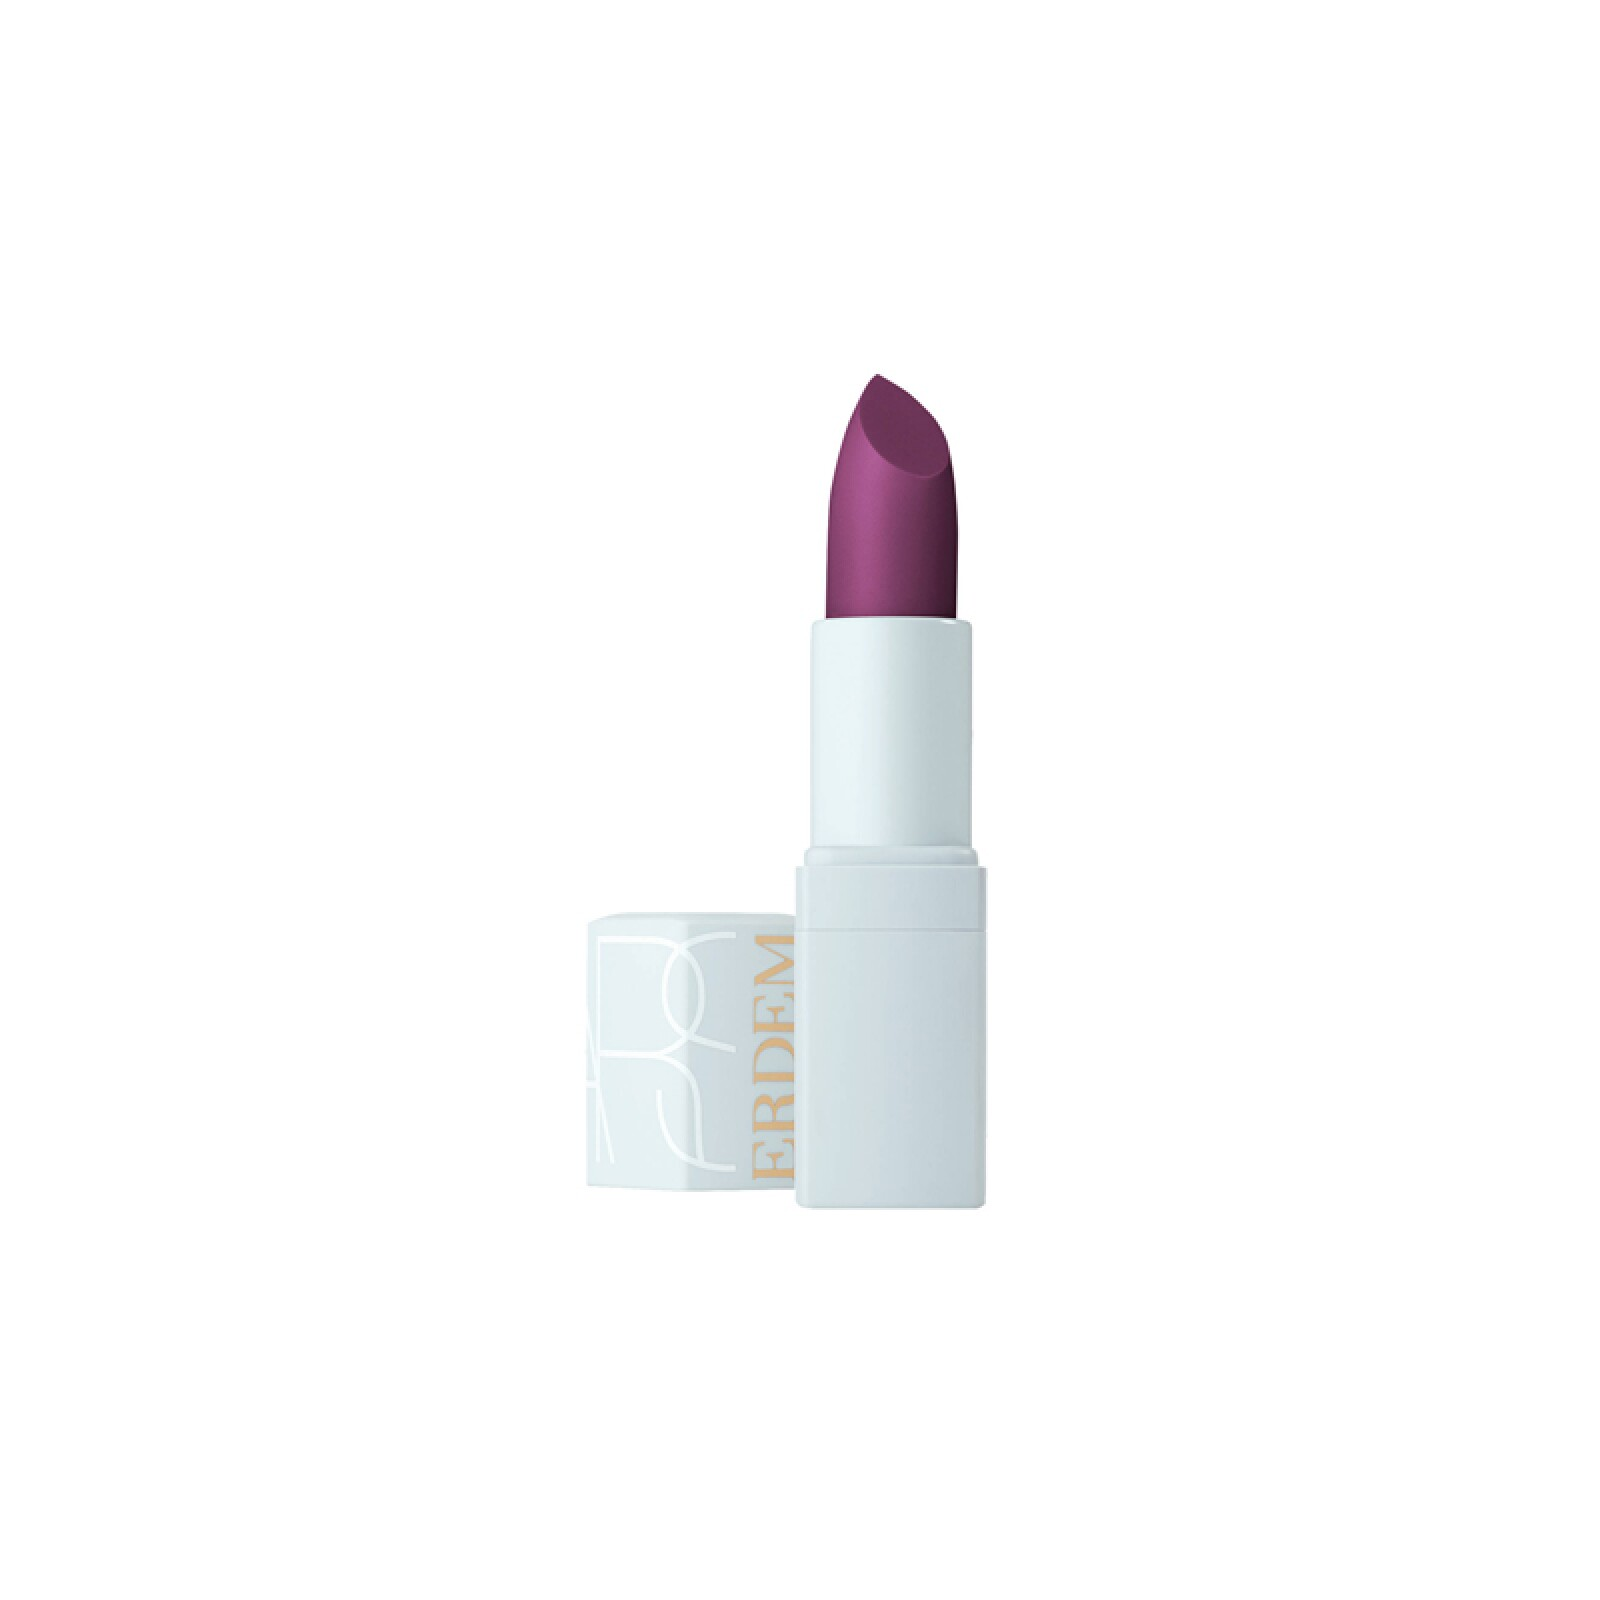 lipstick-alternativo-labial-maquillaje-colores-tonos-nars